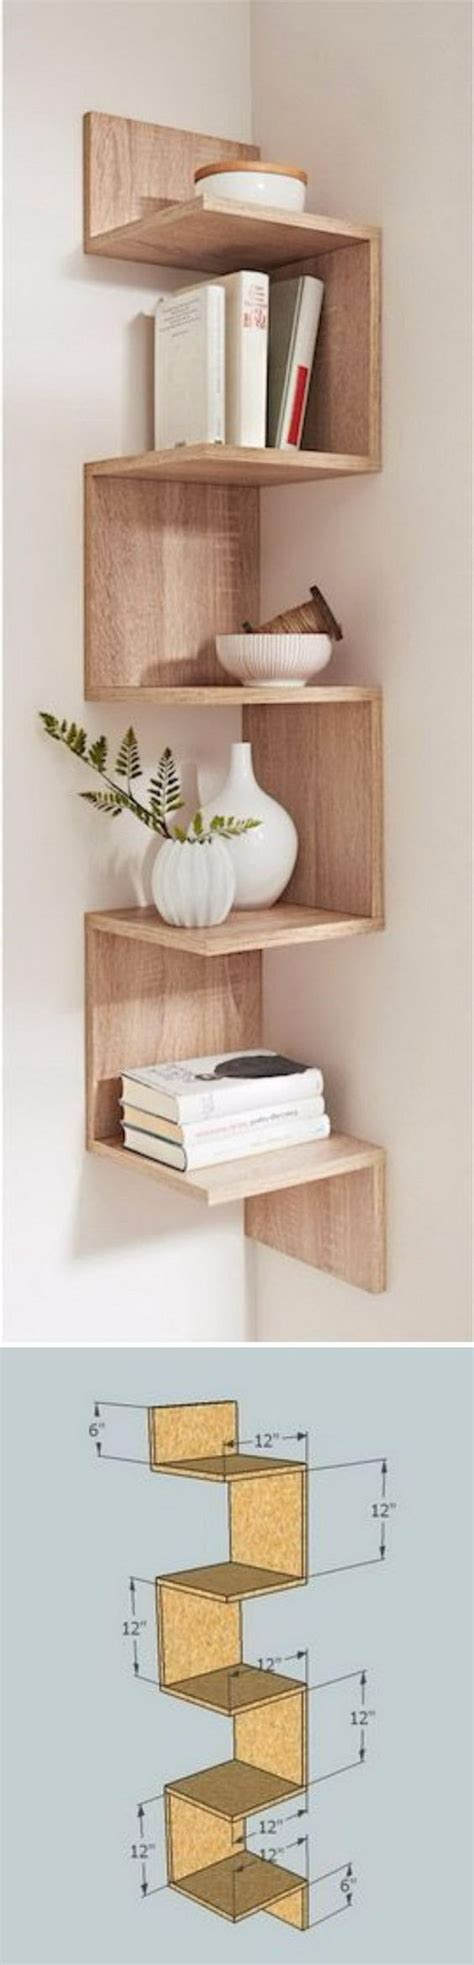 corner wall bookshelves best 25 corner wall shelves ideas on shelves